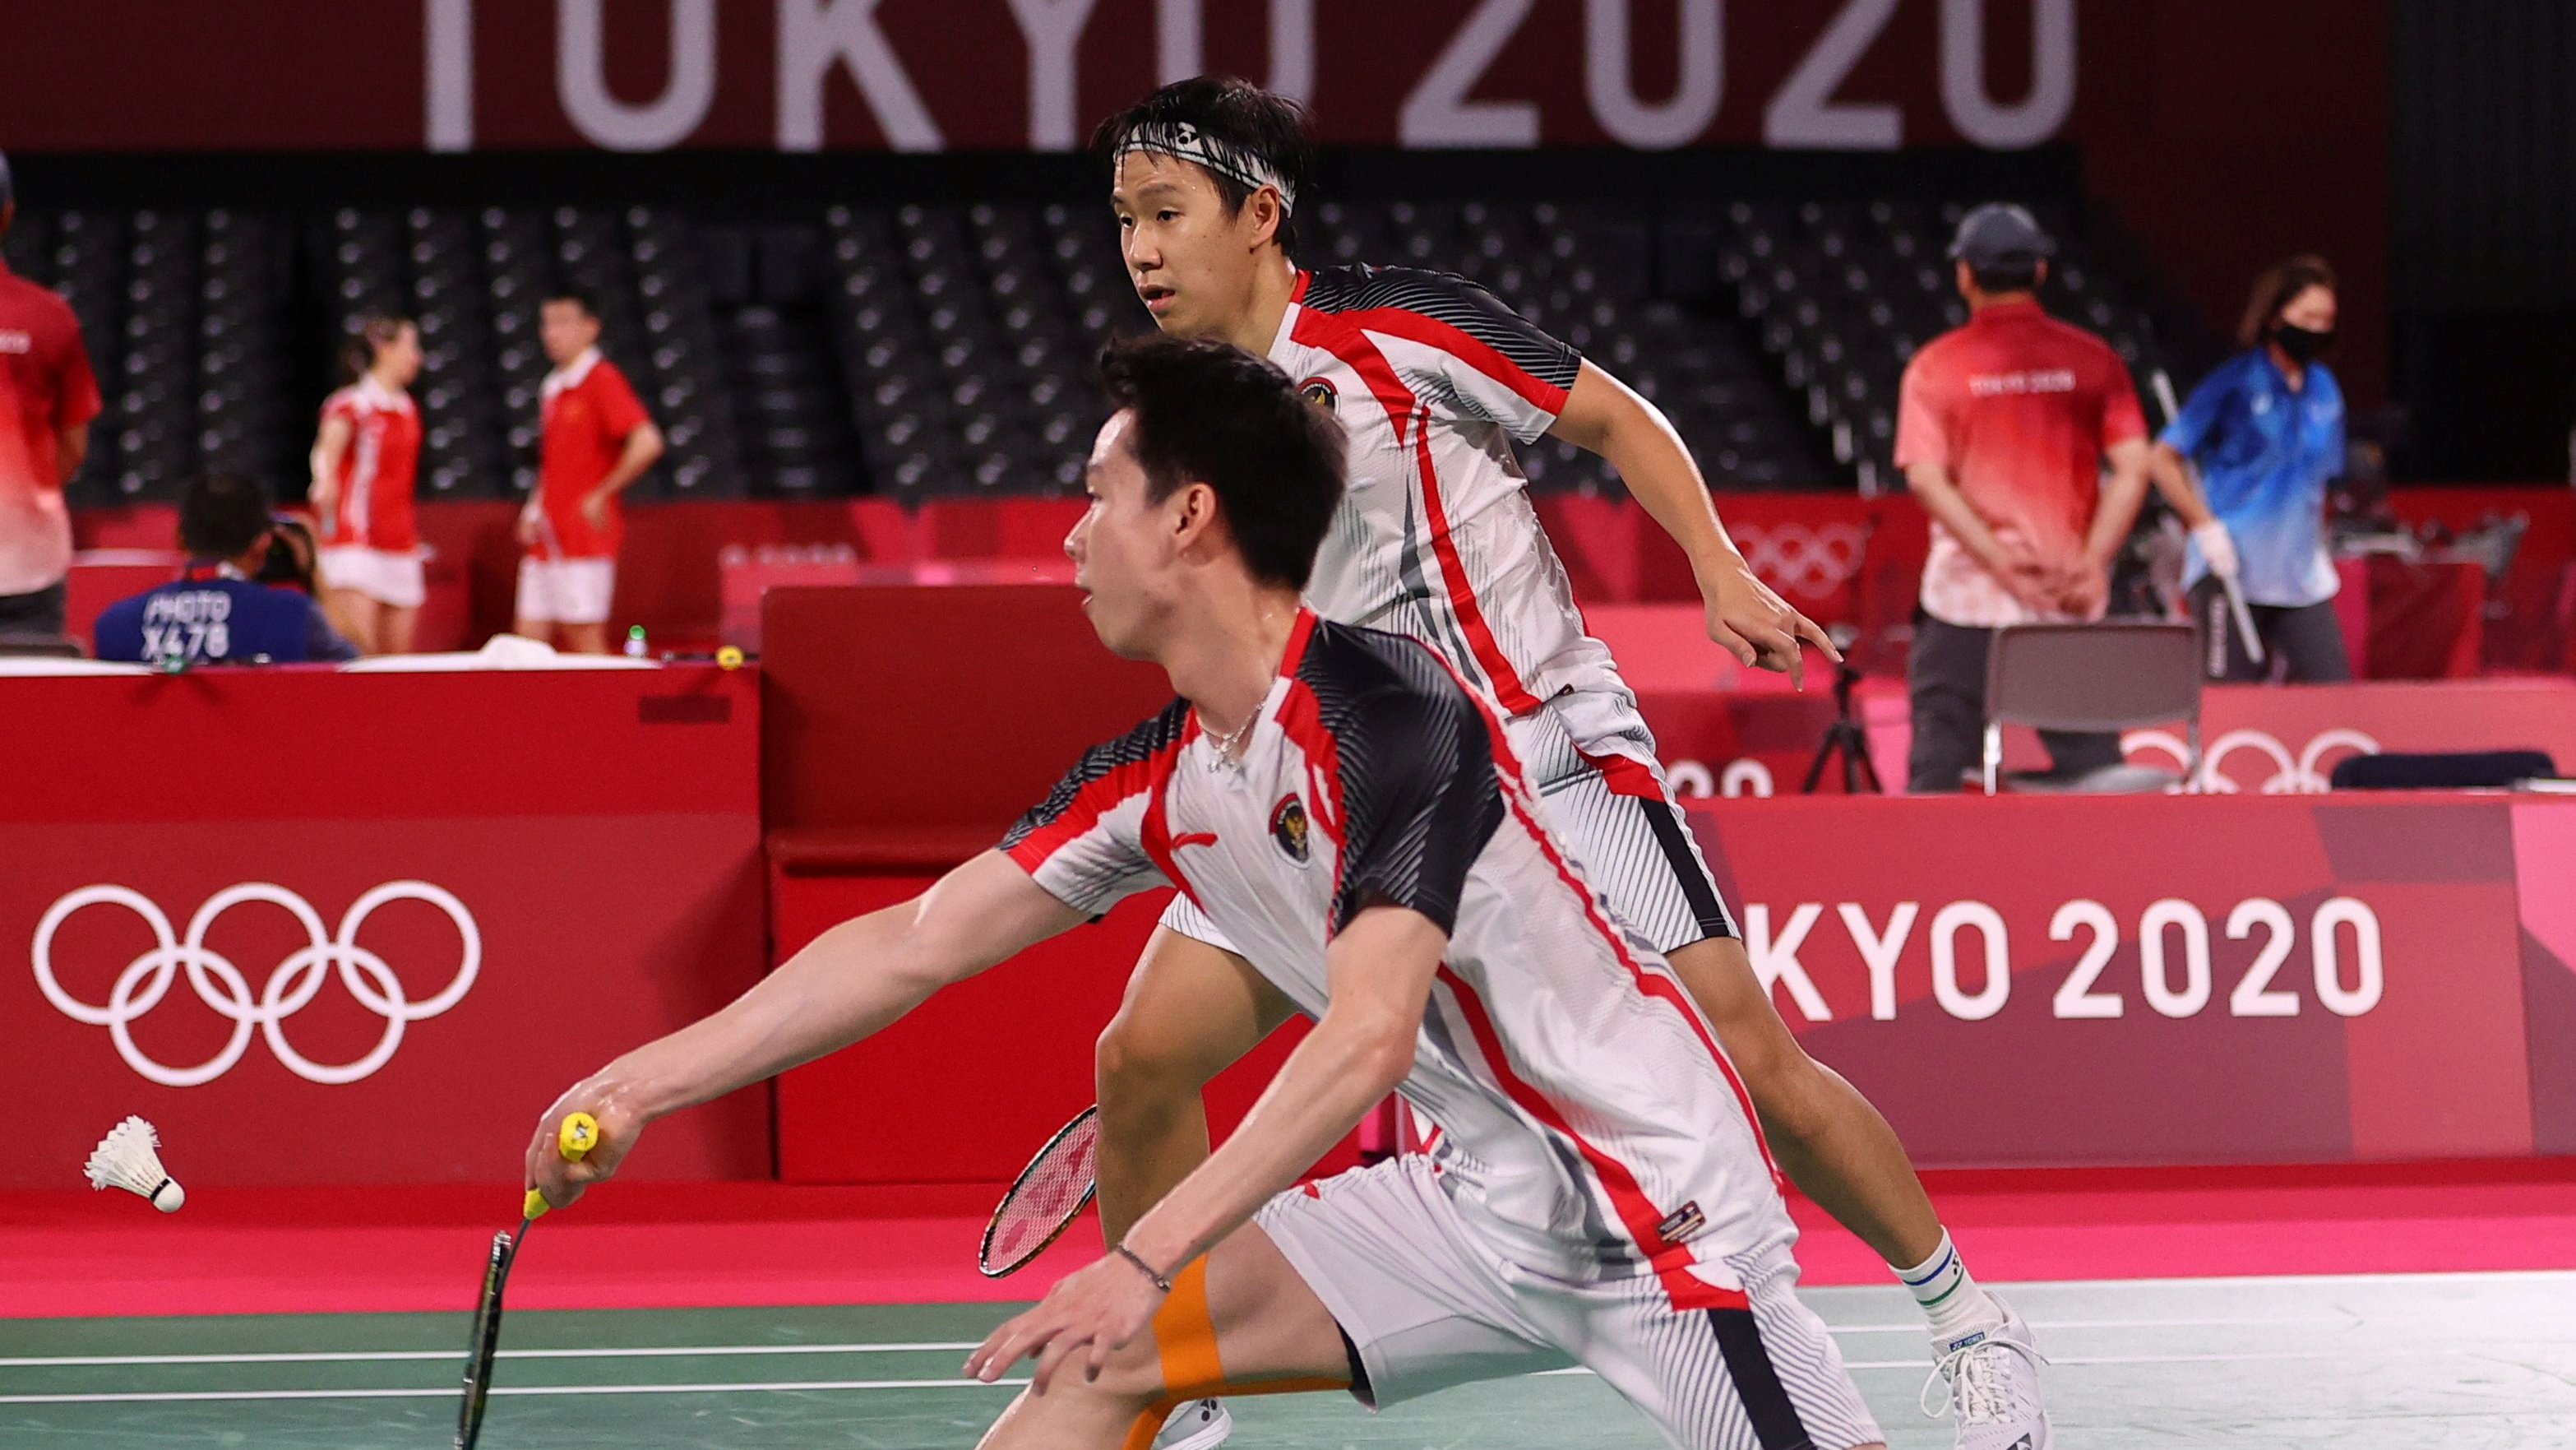 Tokyo 2020 Olympics - Badminton - Men's Doubles - Quarterfinal - MFS - Musashino Forest Sport Plaza, Tokyo, Japan – July 29, 2021. Kevin Sanjaya Sukamuljo of Indonesia in action as Marcus Fernaldi Gideon of Indonesia looks on during the match against Aaron Chia of Malaysia and Soh Wooi Yik of Malaysia. REUTERS/Hamad I Mohammed